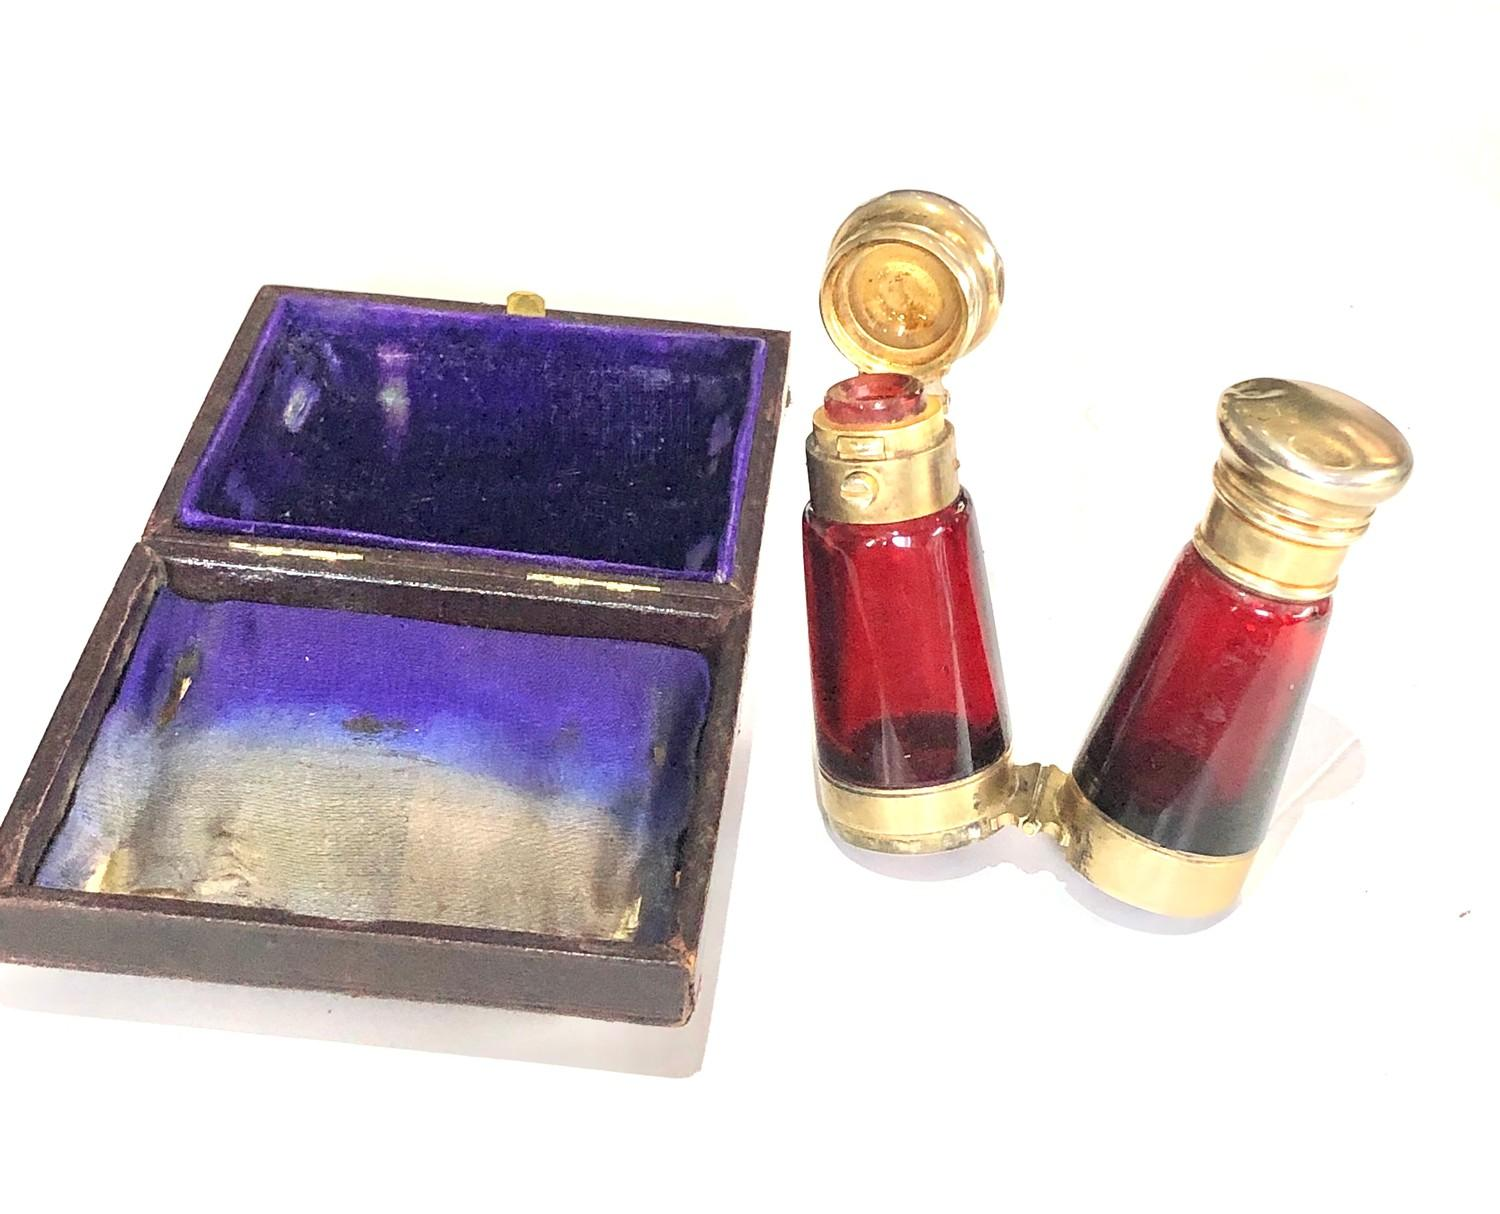 Rare antique ruby glass and silver mounted novelty binoculars scent bottle in original box by Maw